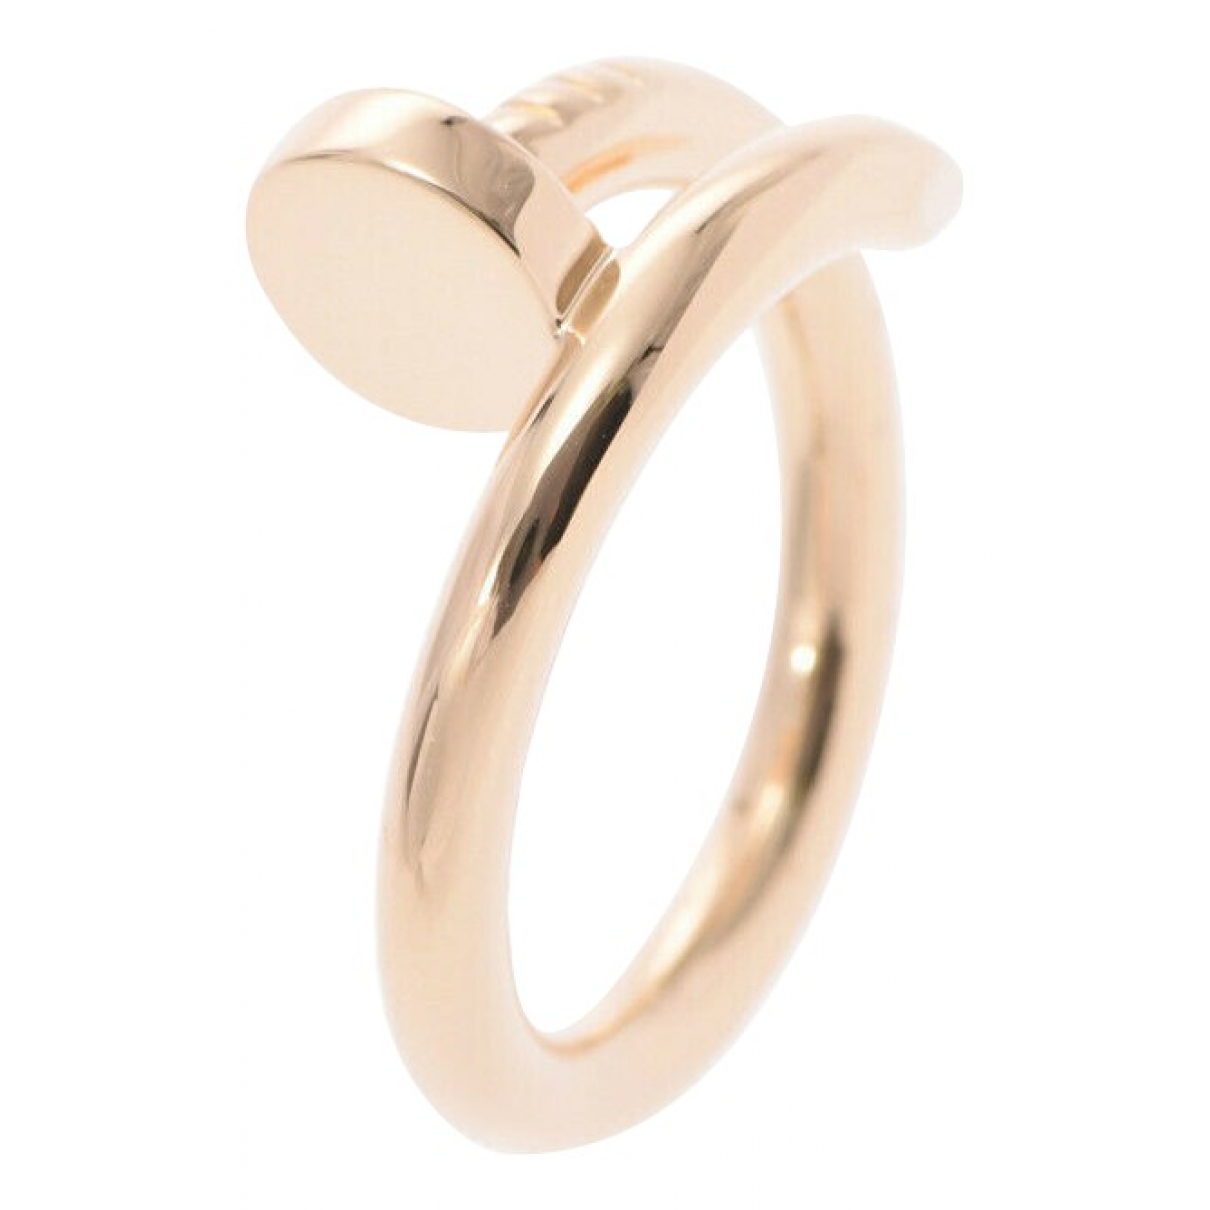 Cartier Juste un Clou Gold Pink gold ring for Women 52 mm.